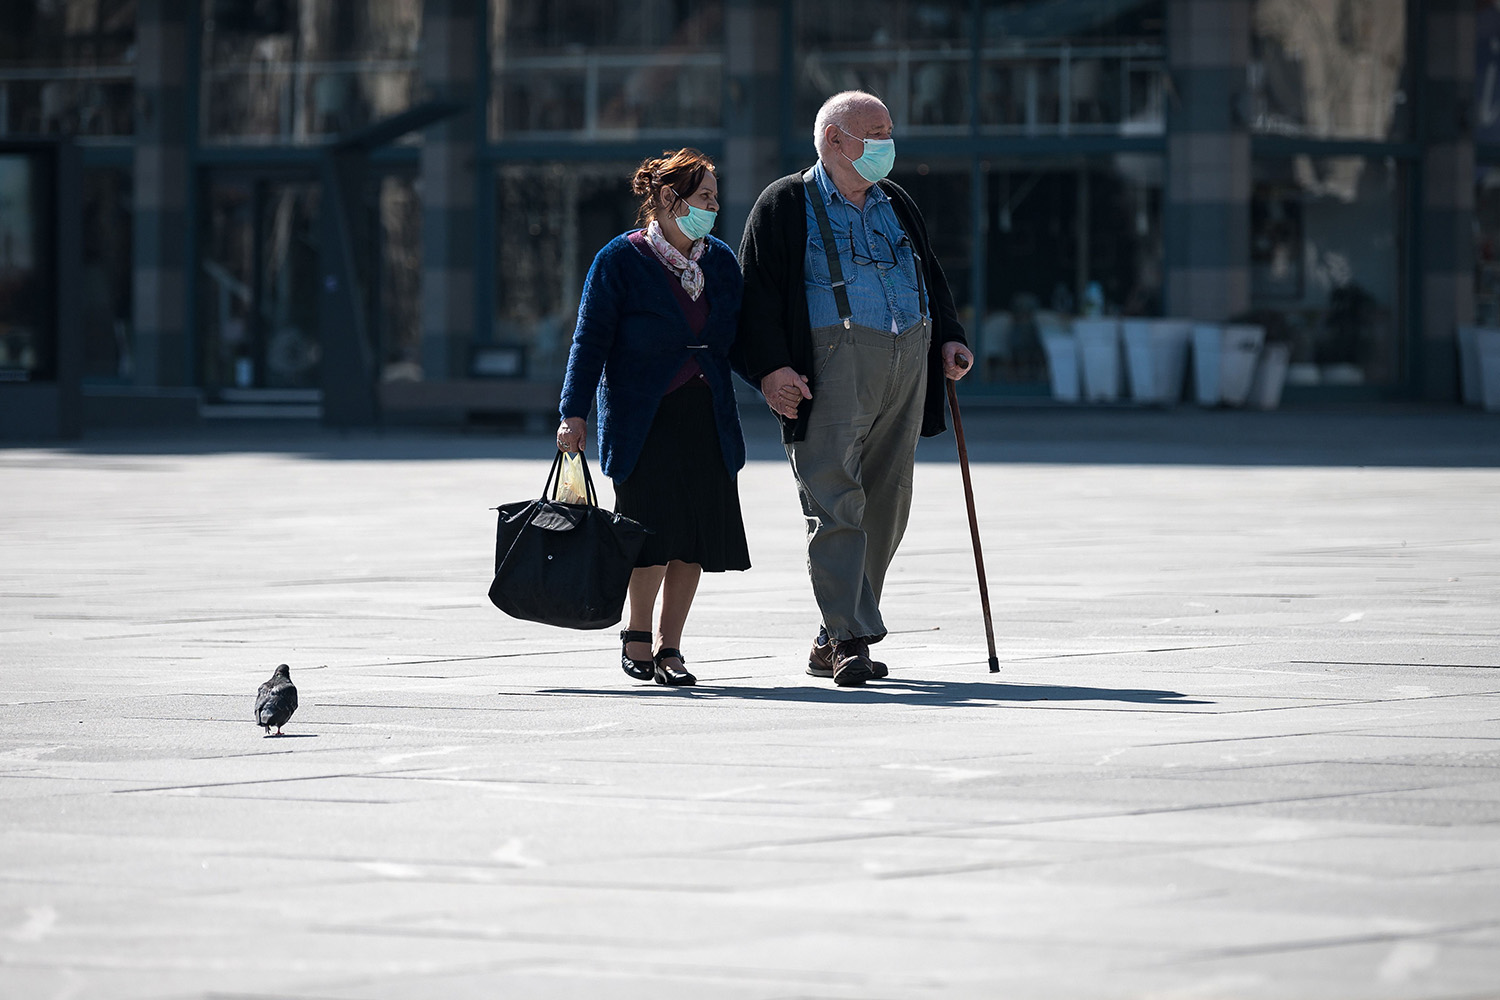 An elderly couple walk across Belgrade, Serbia's main square March 17. ANDREJ ISAKOVIC/AFP via Getty Images